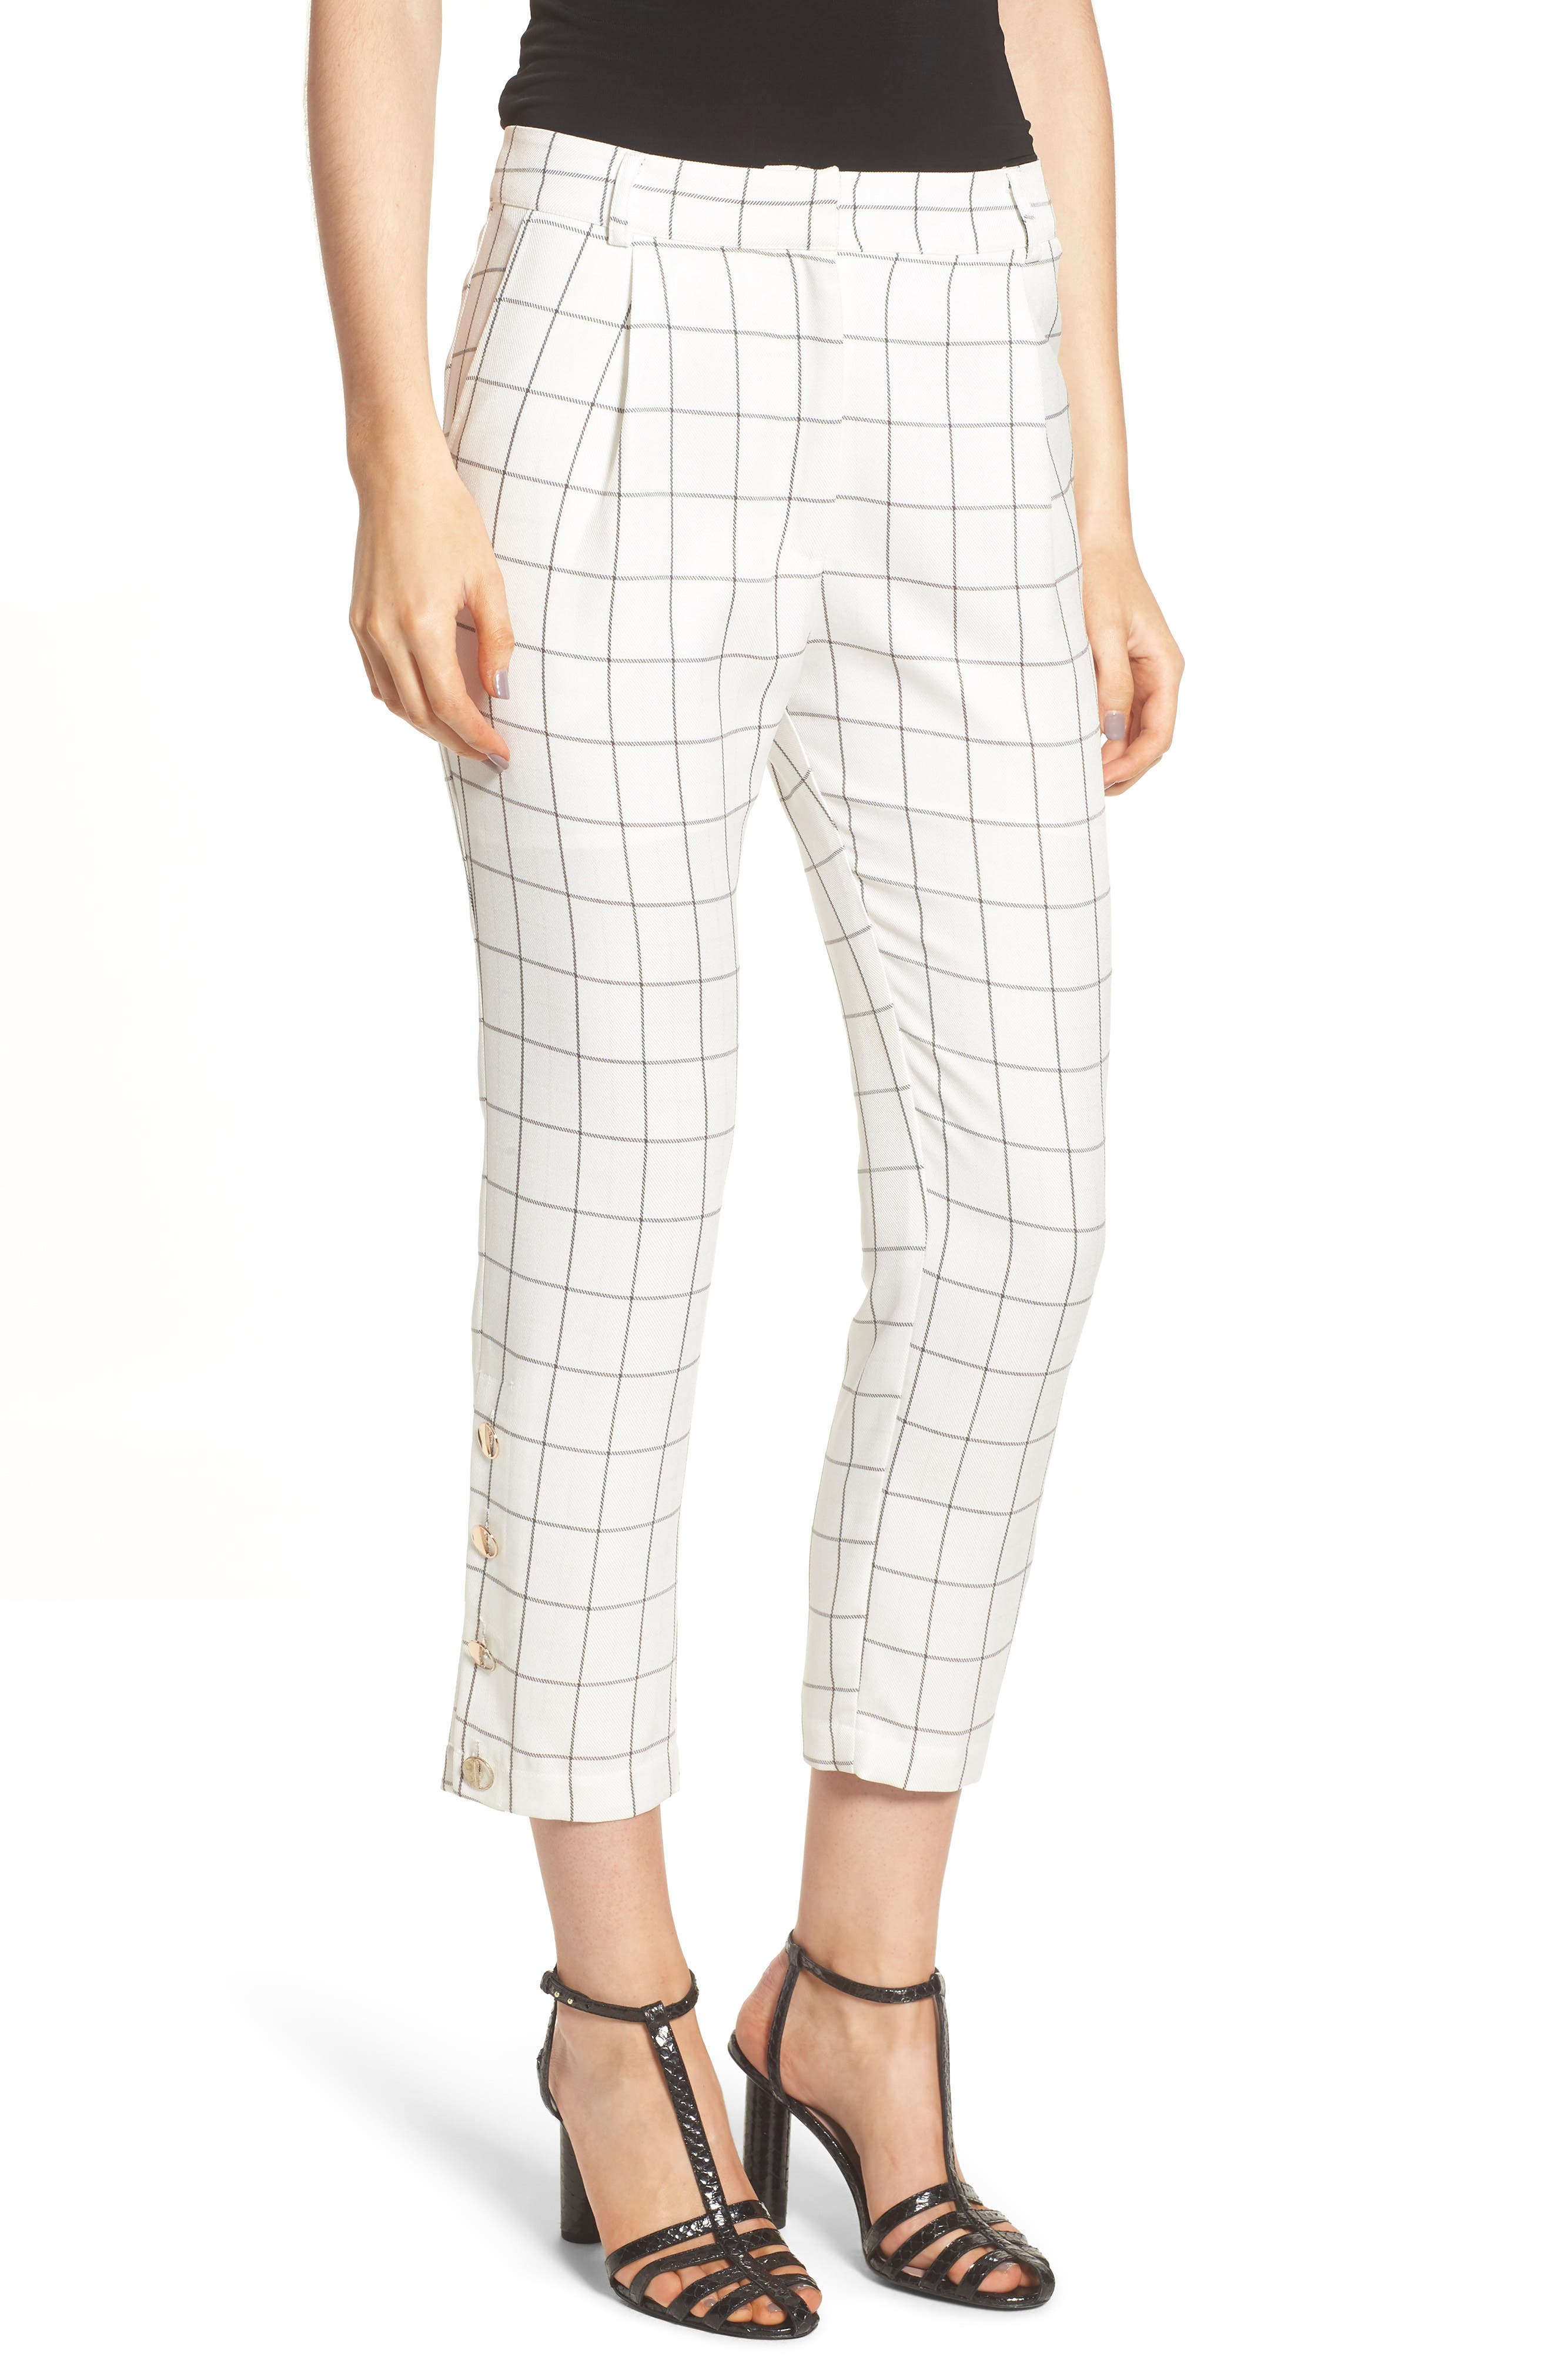 Chriselle x J.O.A. High Waist Ankle Skinny Trousers,                             Main thumbnail 1, color,                             White